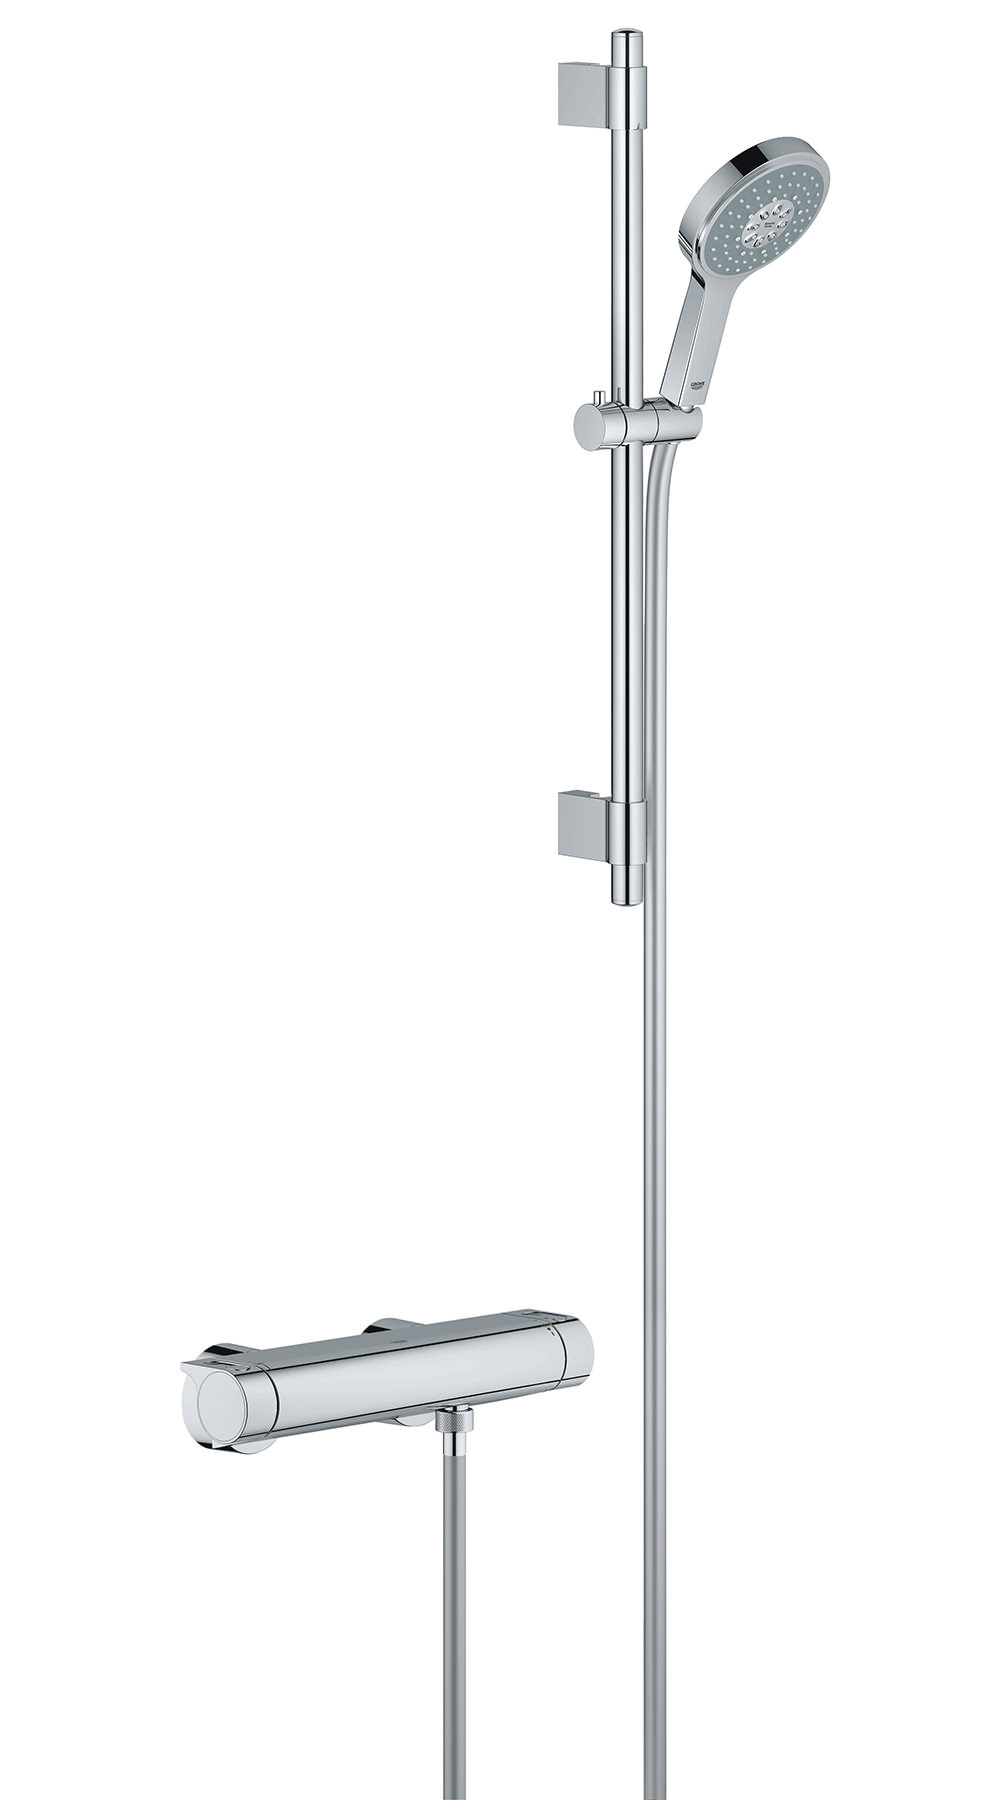 Grohe Chrome Plated Shower Set With Thermostatic Exposed Valve 34281001